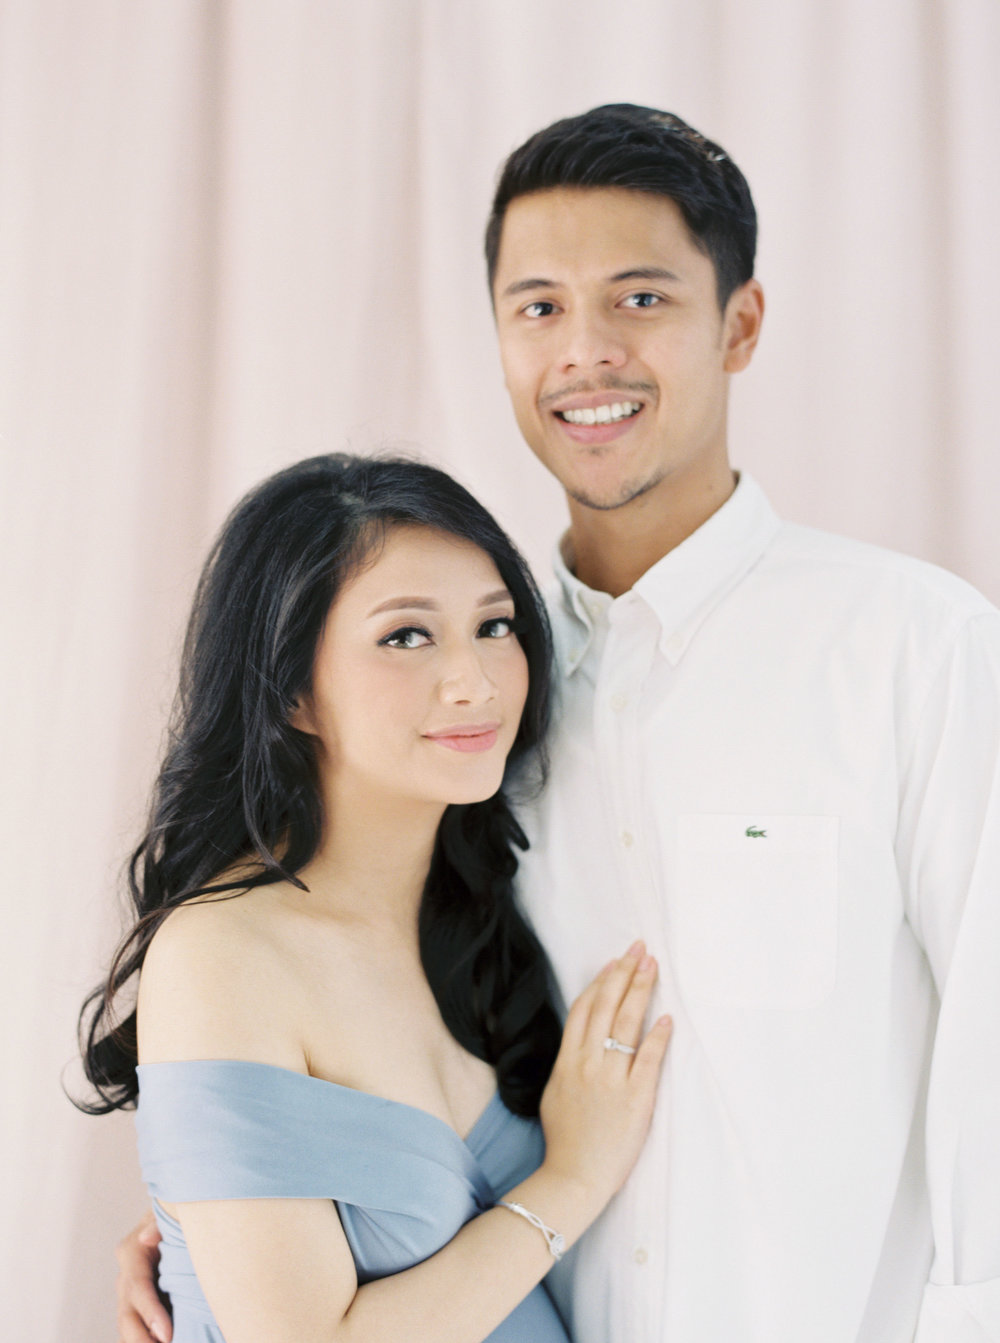 Romantic Elegant Couple Maternity Portrait - Studio June - Film Photography & Styling - Jakarta-45.jpg